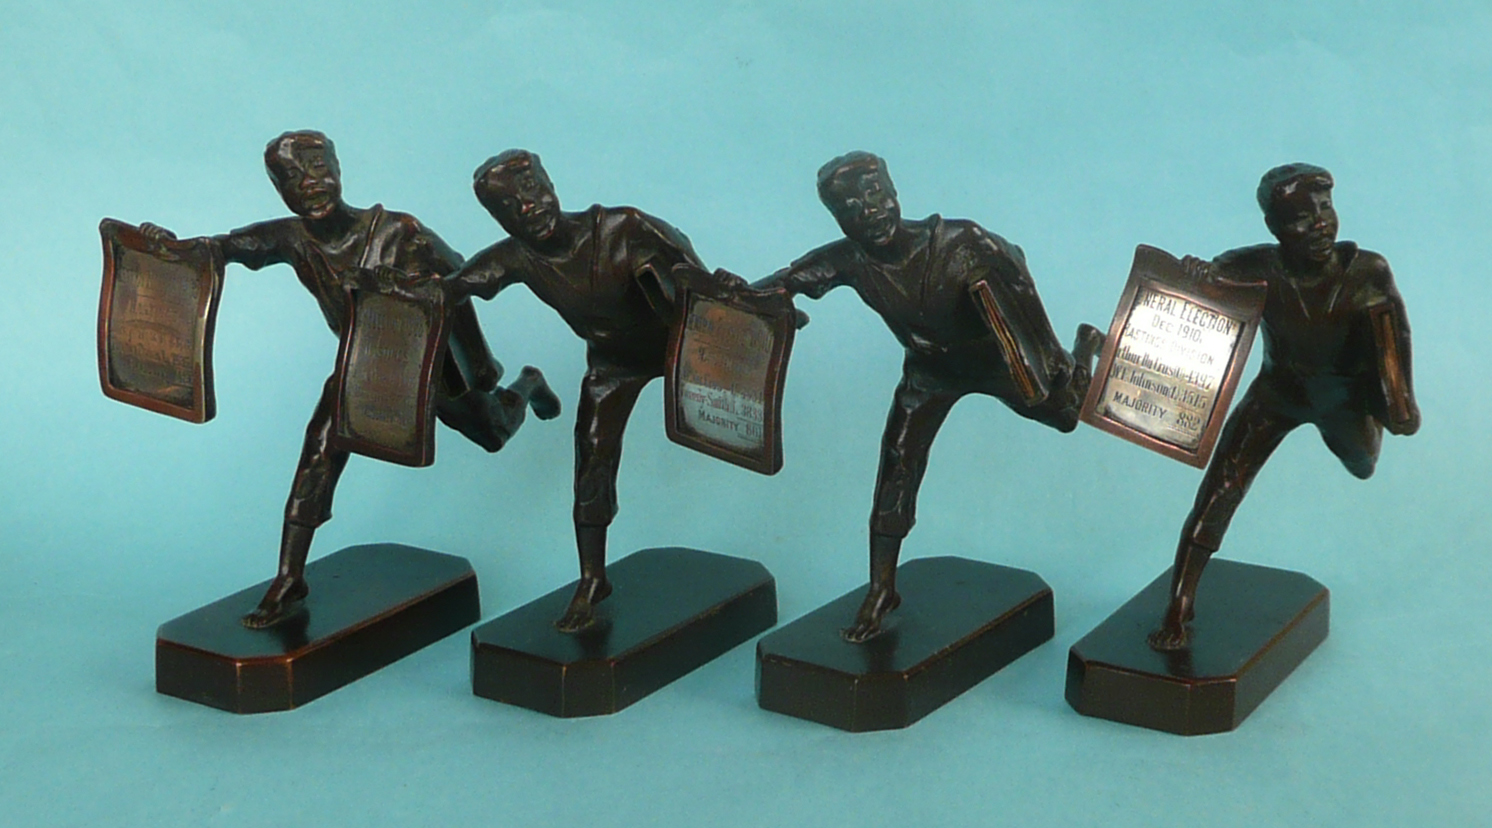 Lot 35 - 1906 to 1910 Elections in Hastings and Ducross: four bronze figures by Elkington & Co depicting